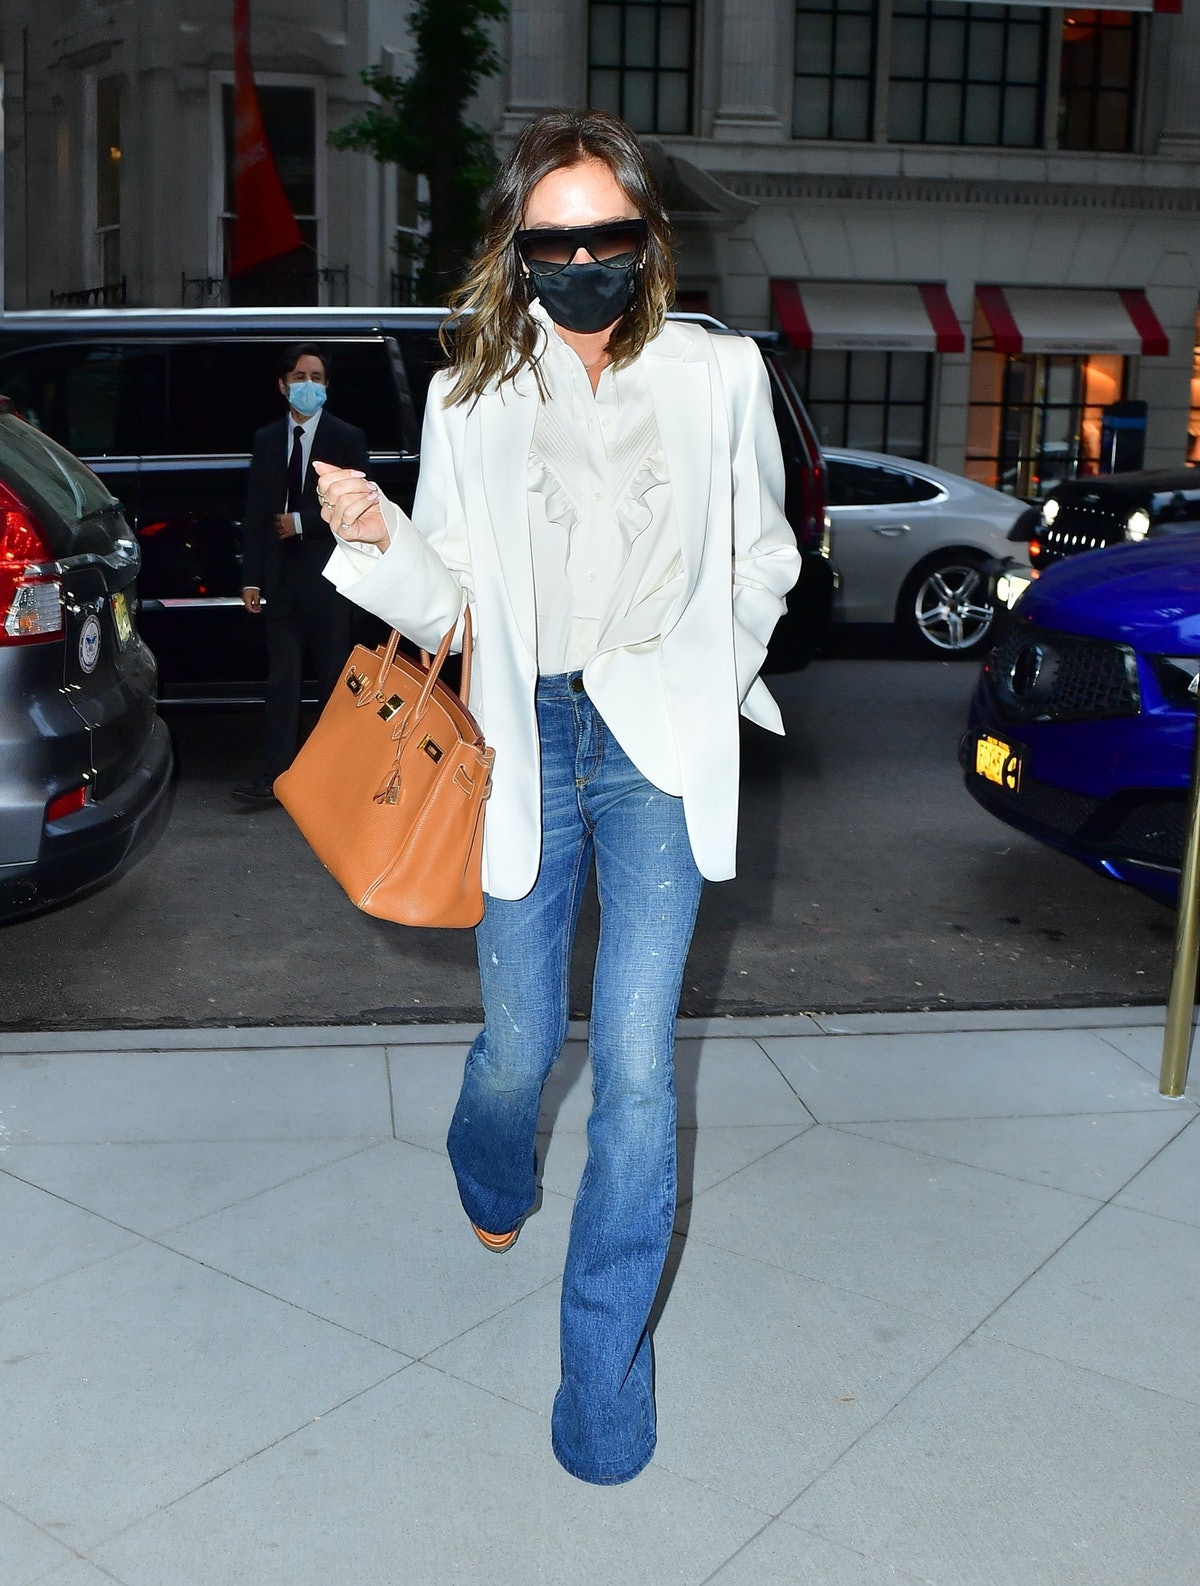 Victoria Beckham wears flared blue jeans while out in New York City.